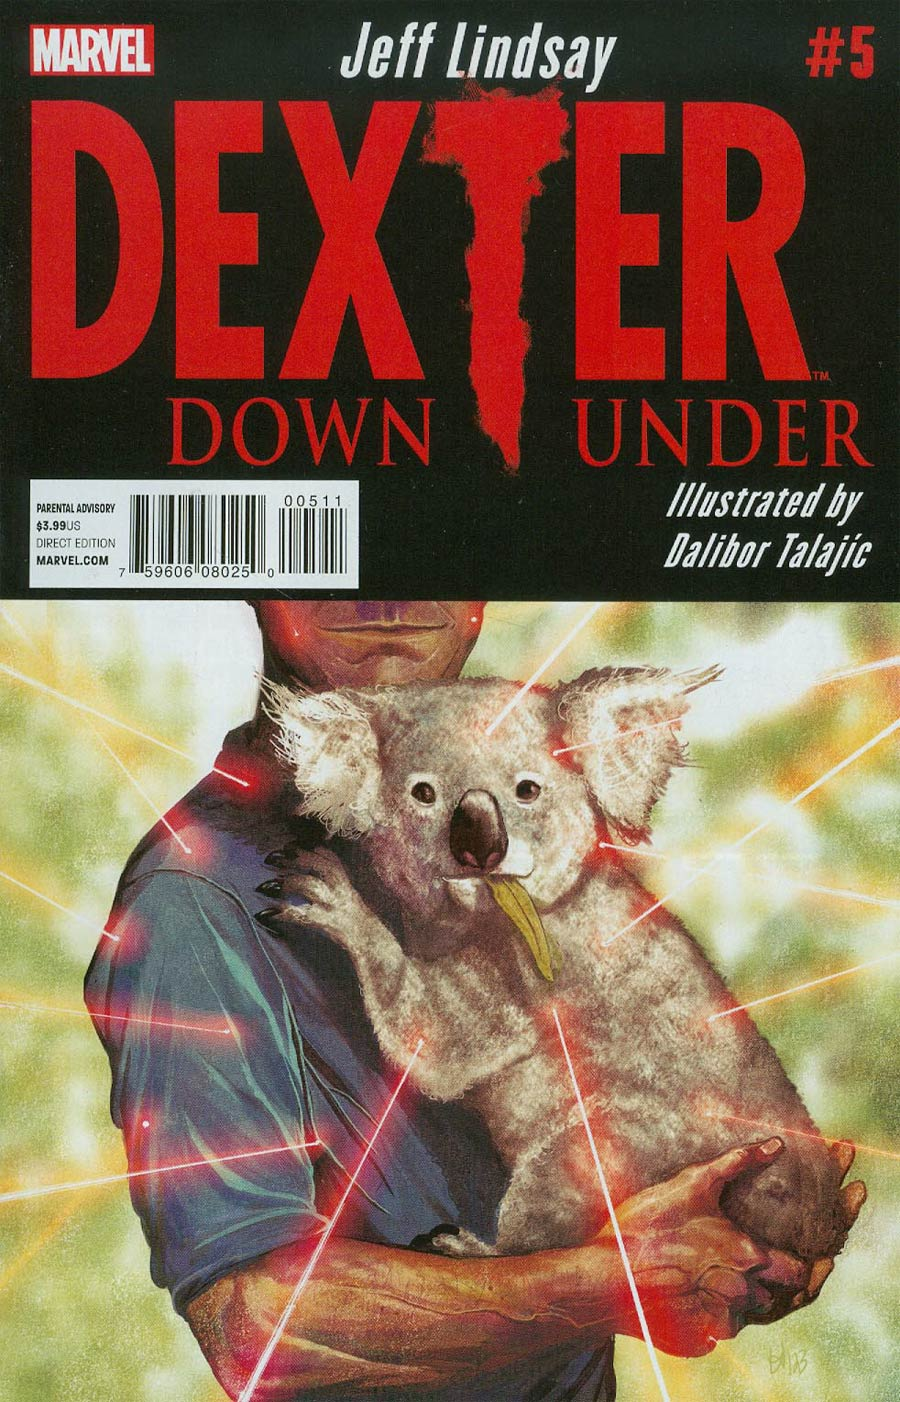 Dexter Down Under #5